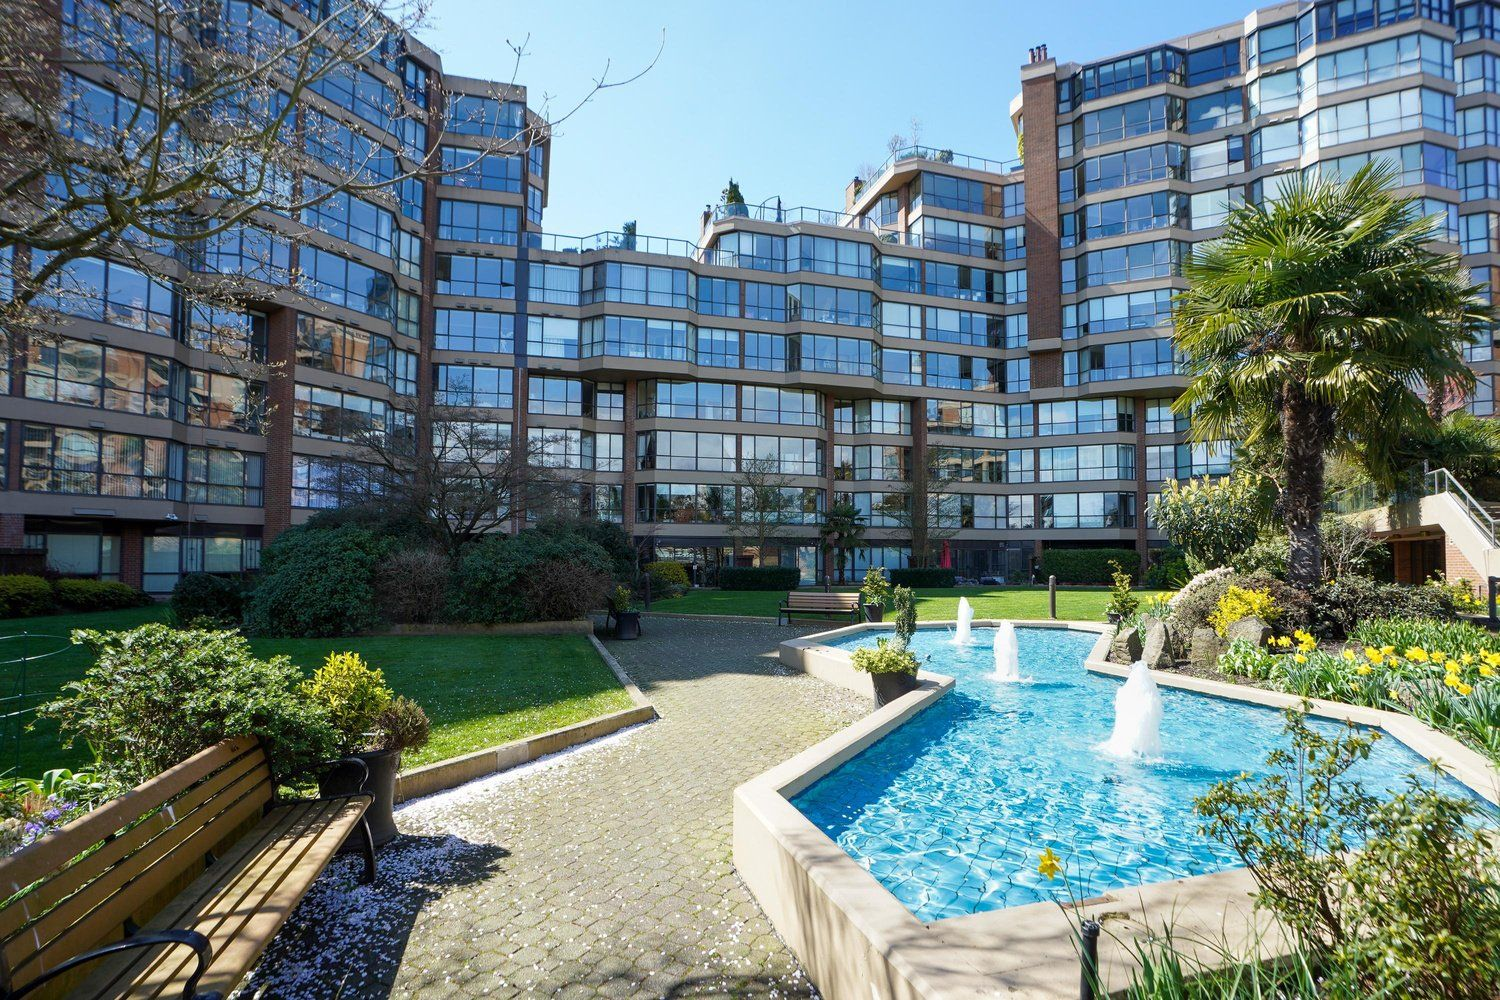 """Main Photo: 301 1470 PENNYFARTHING Drive in Vancouver: False Creek Condo for sale in """"Harbour Cove"""" (Vancouver West)  : MLS®# R2563951"""